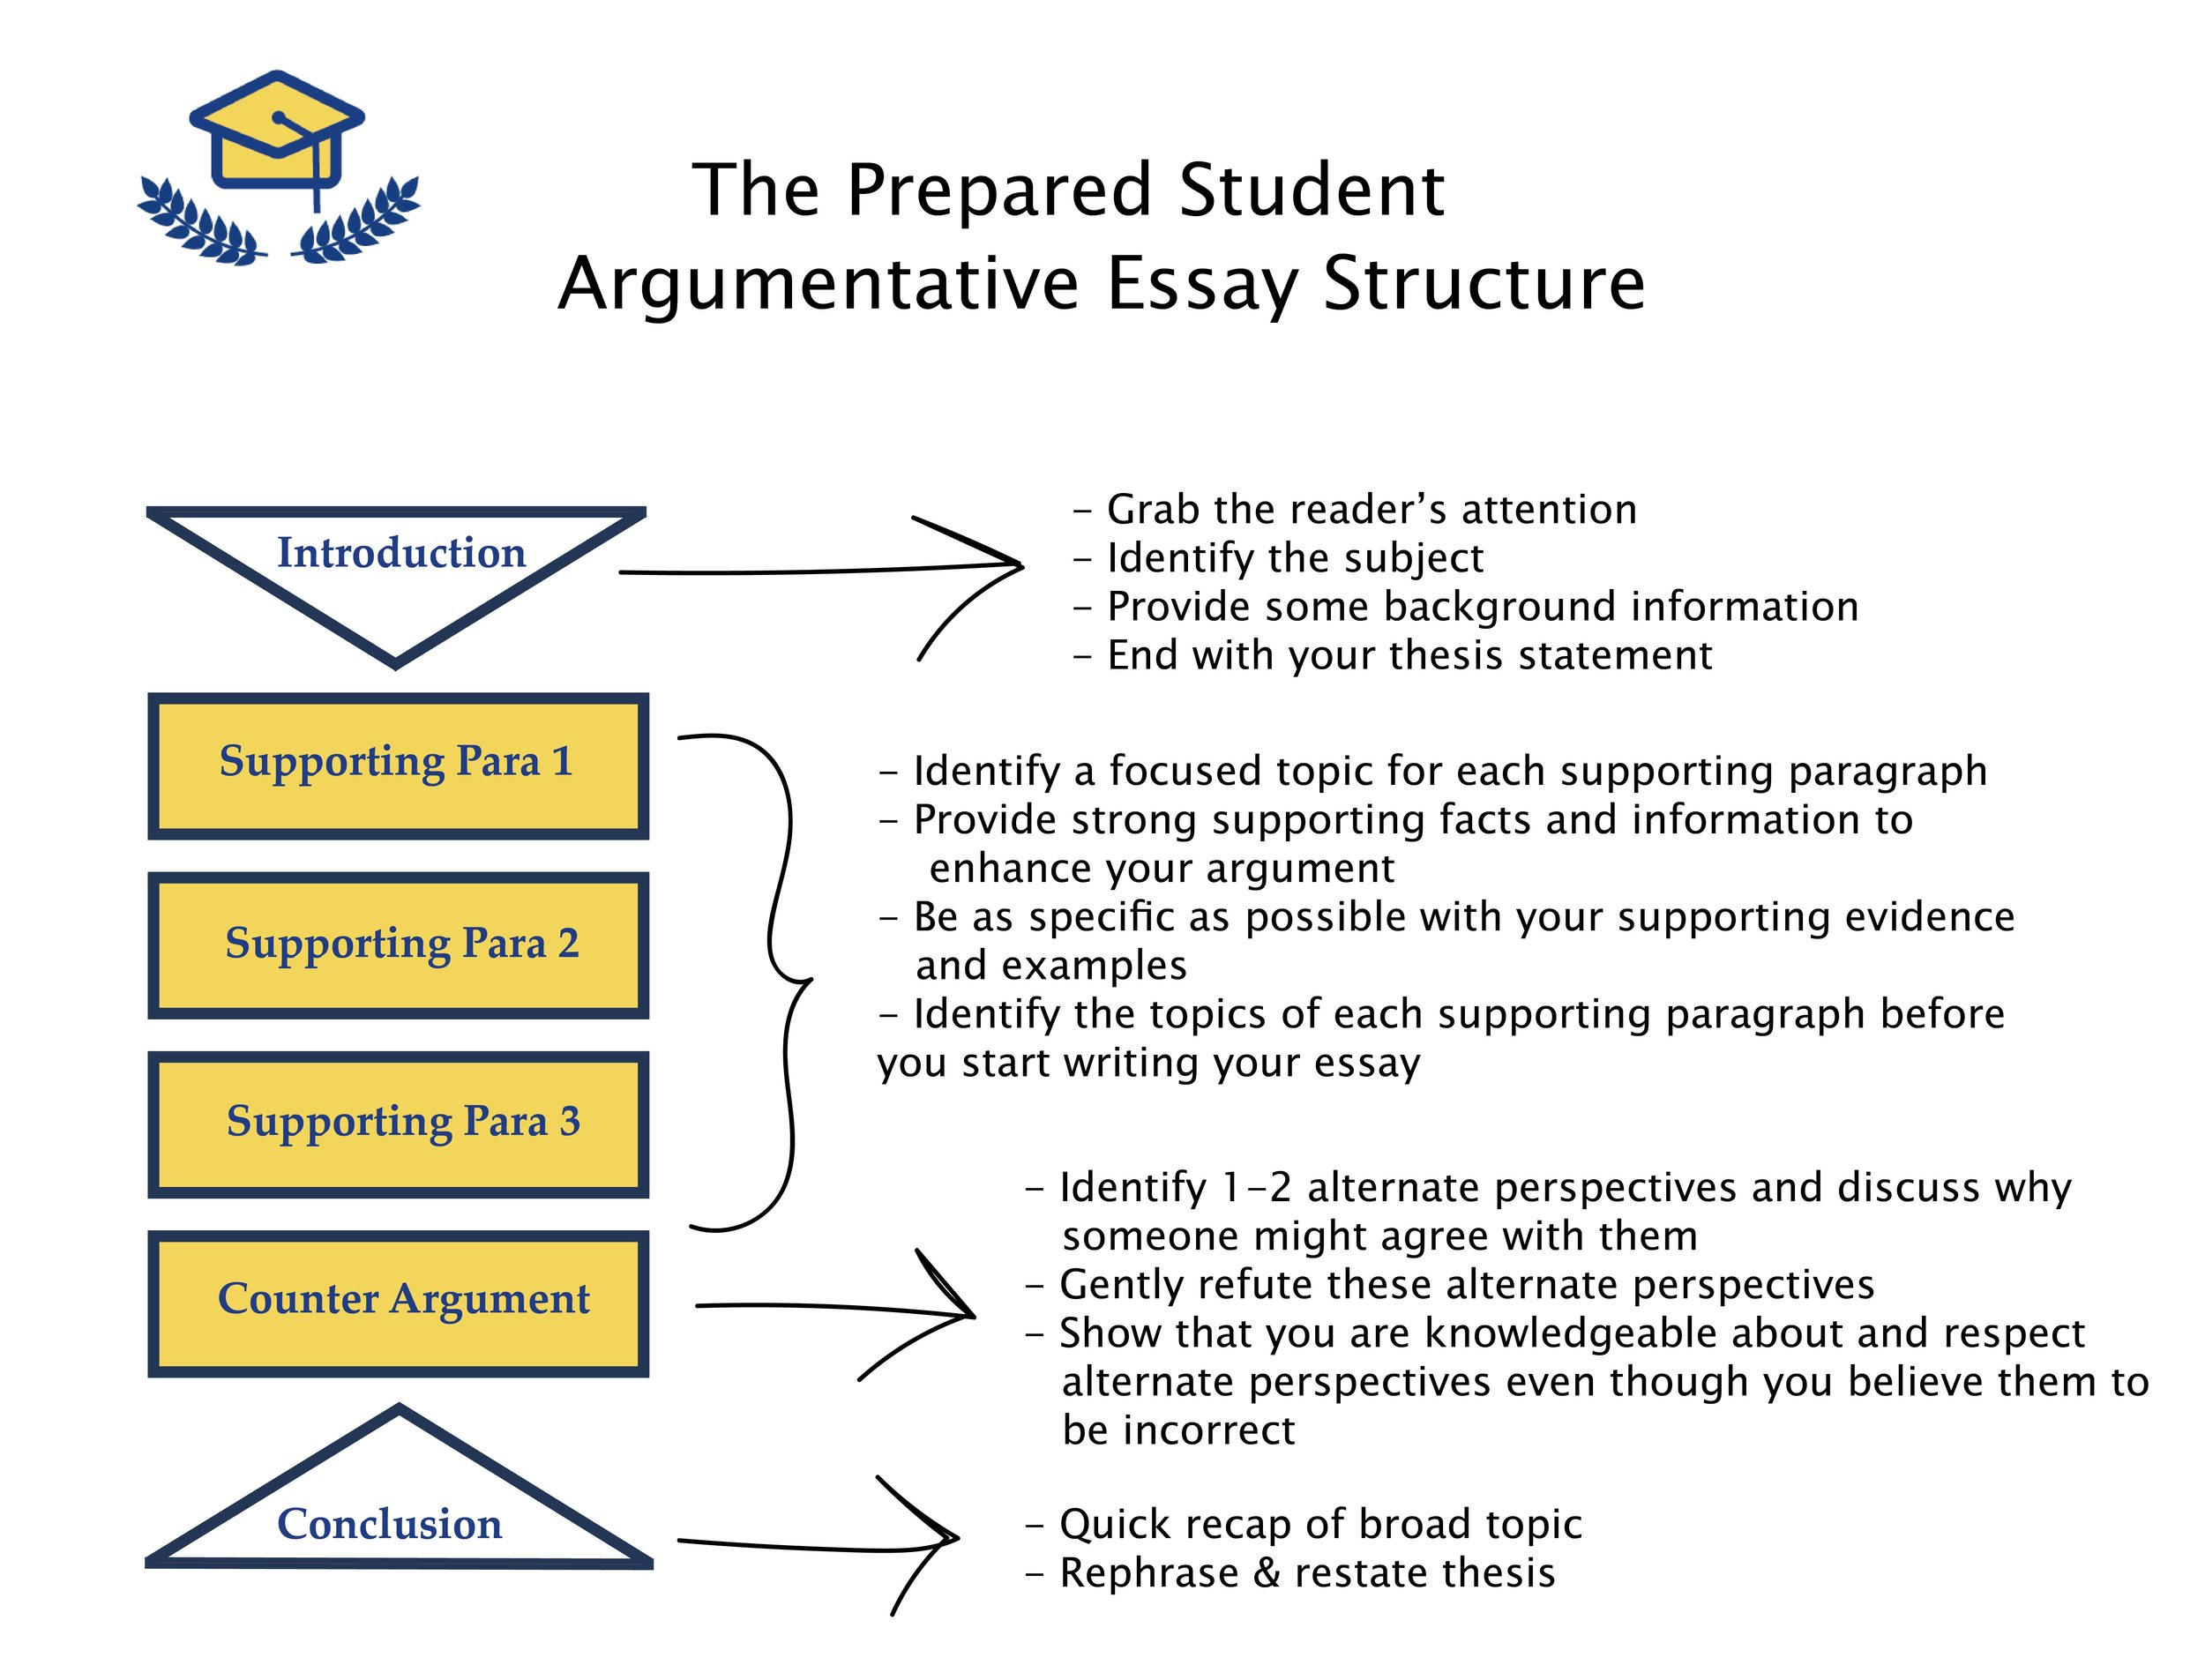 Full Size of Act Writing Prep To Write An Argumentative Essay The Prepared Student Start Structure How